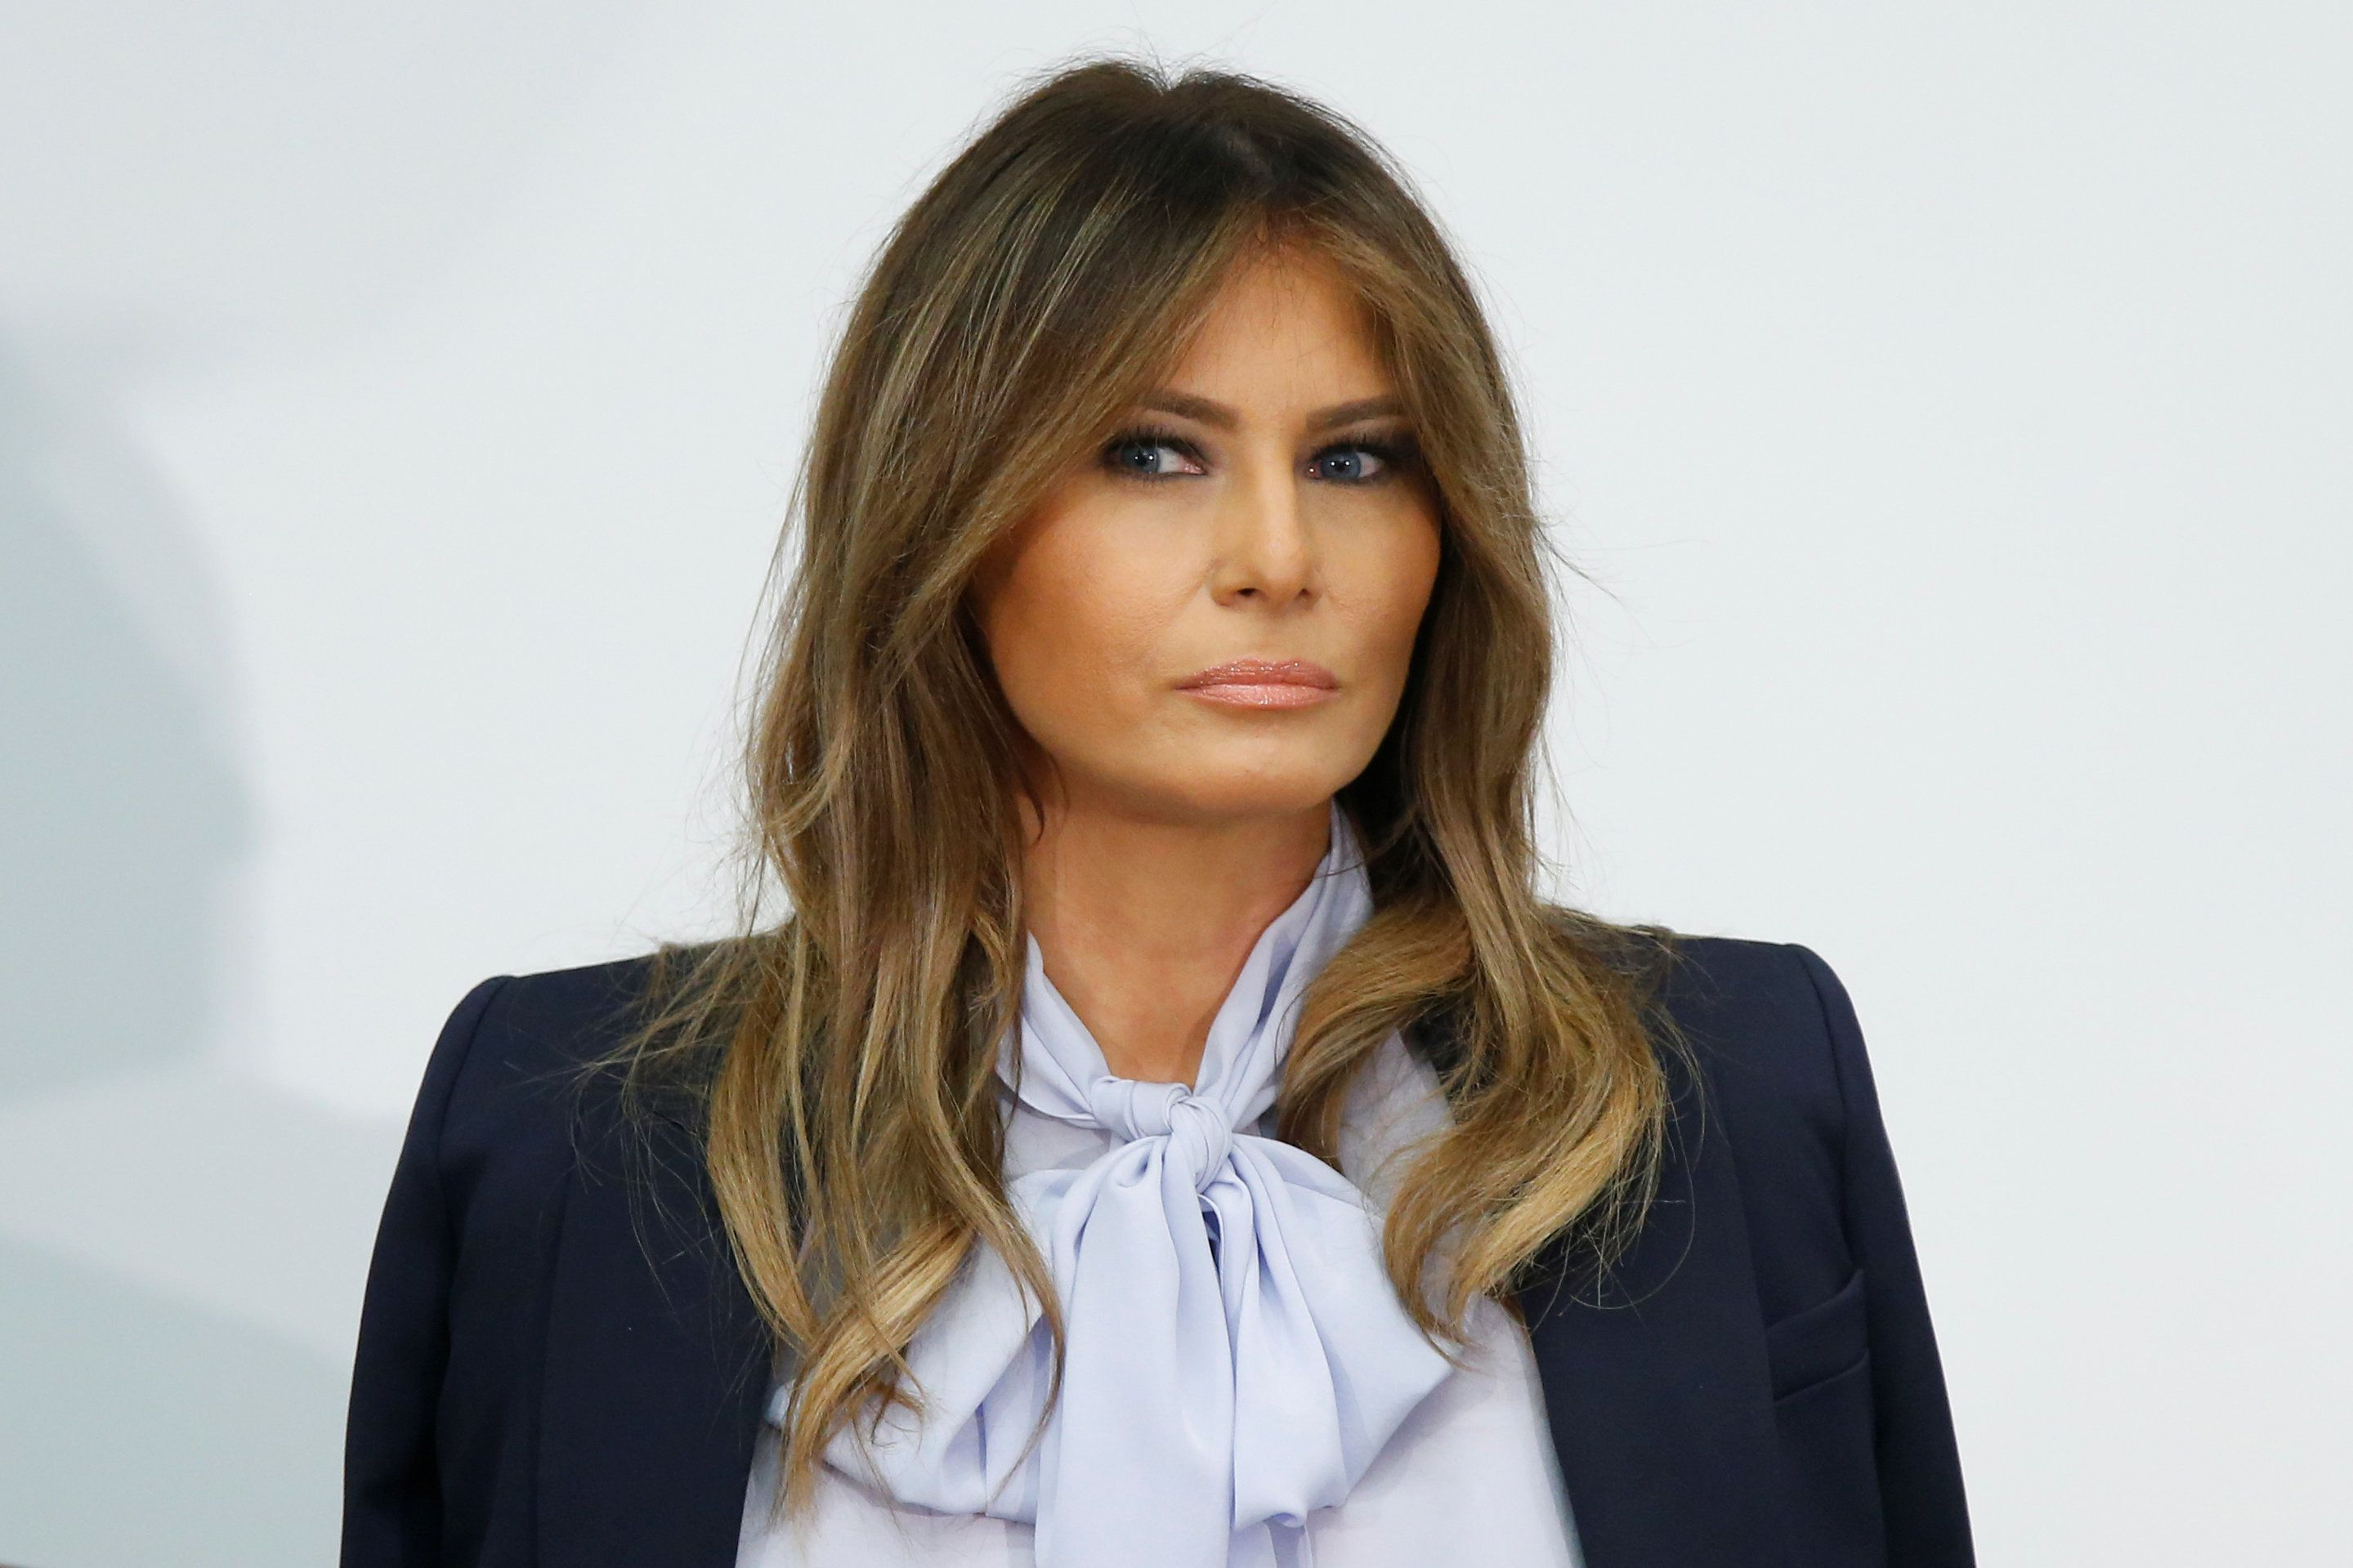 Melania Trump's Anti-Cyberbullying Tweet Does Not Go Over Well